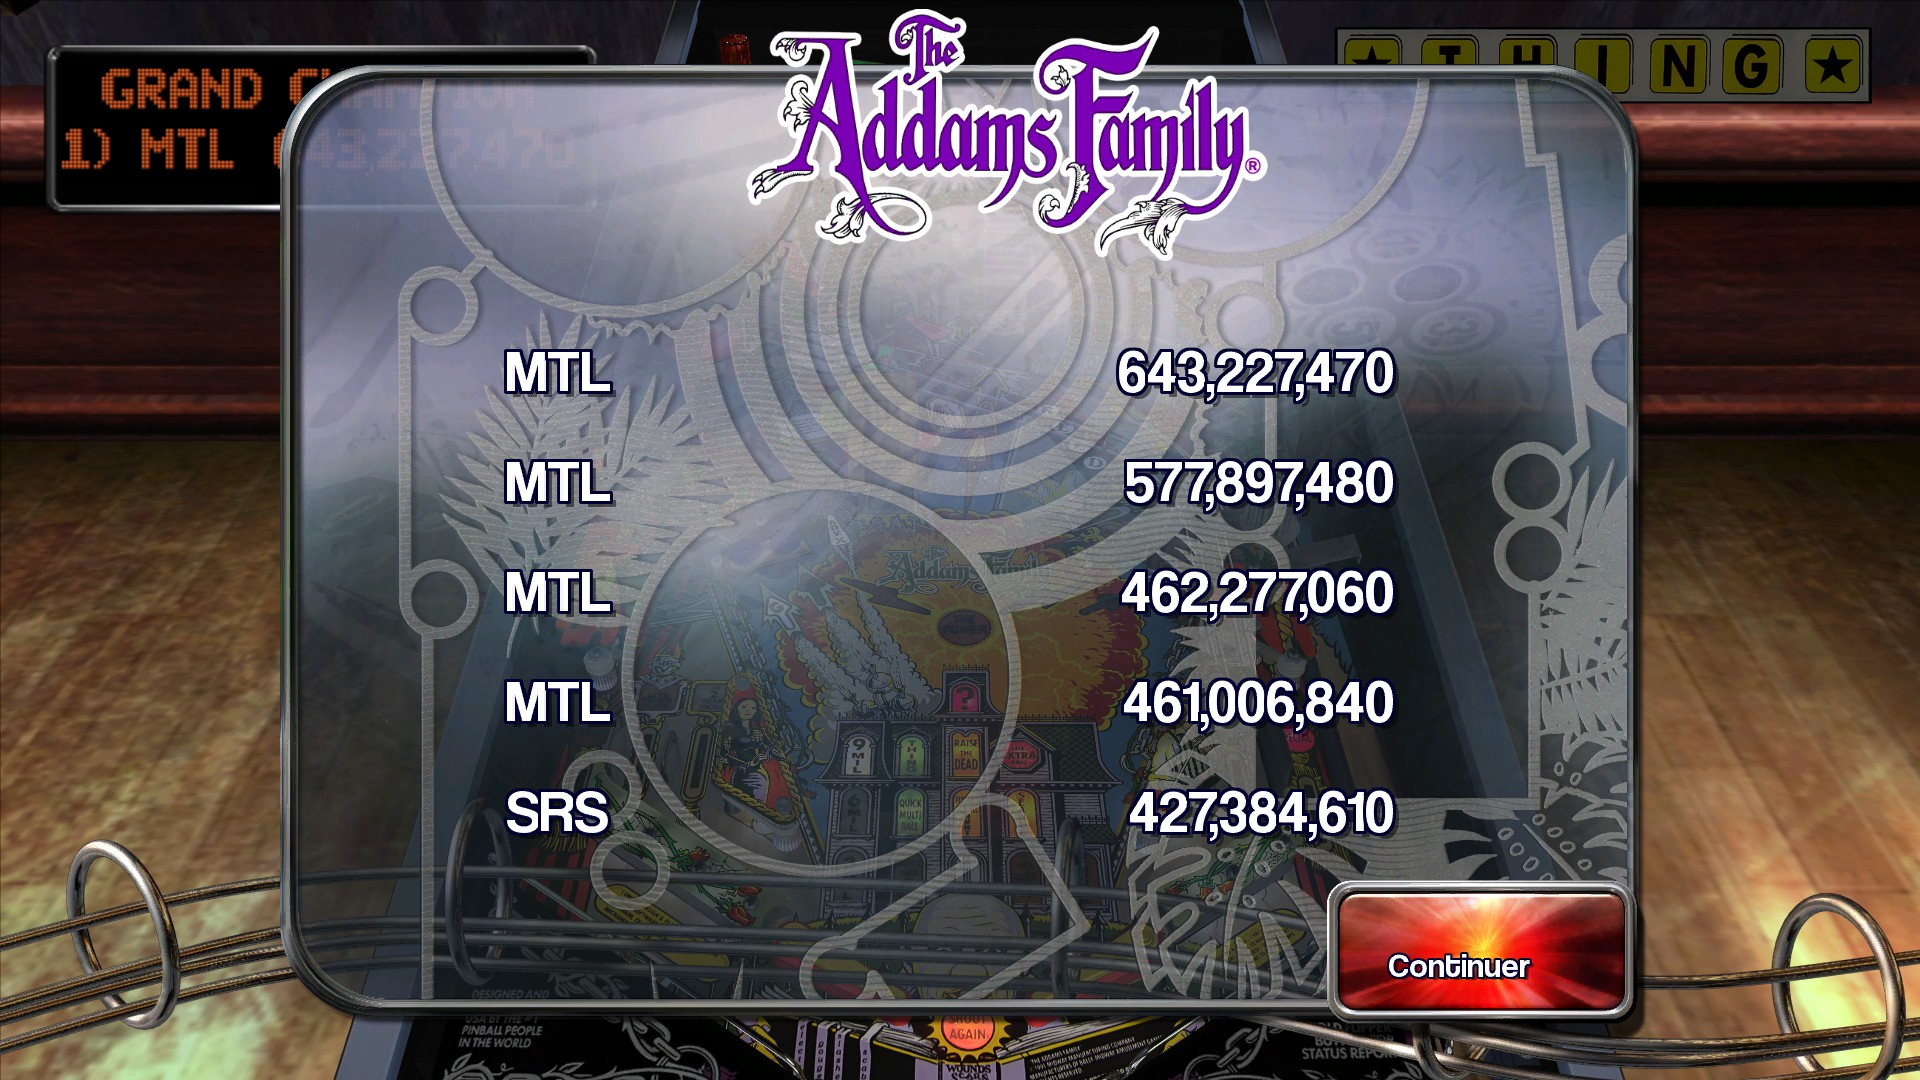 Mantalow: Pinball Arcade: The Addams Family (PC) 643,227,470 points on 2016-02-25 08:02:34